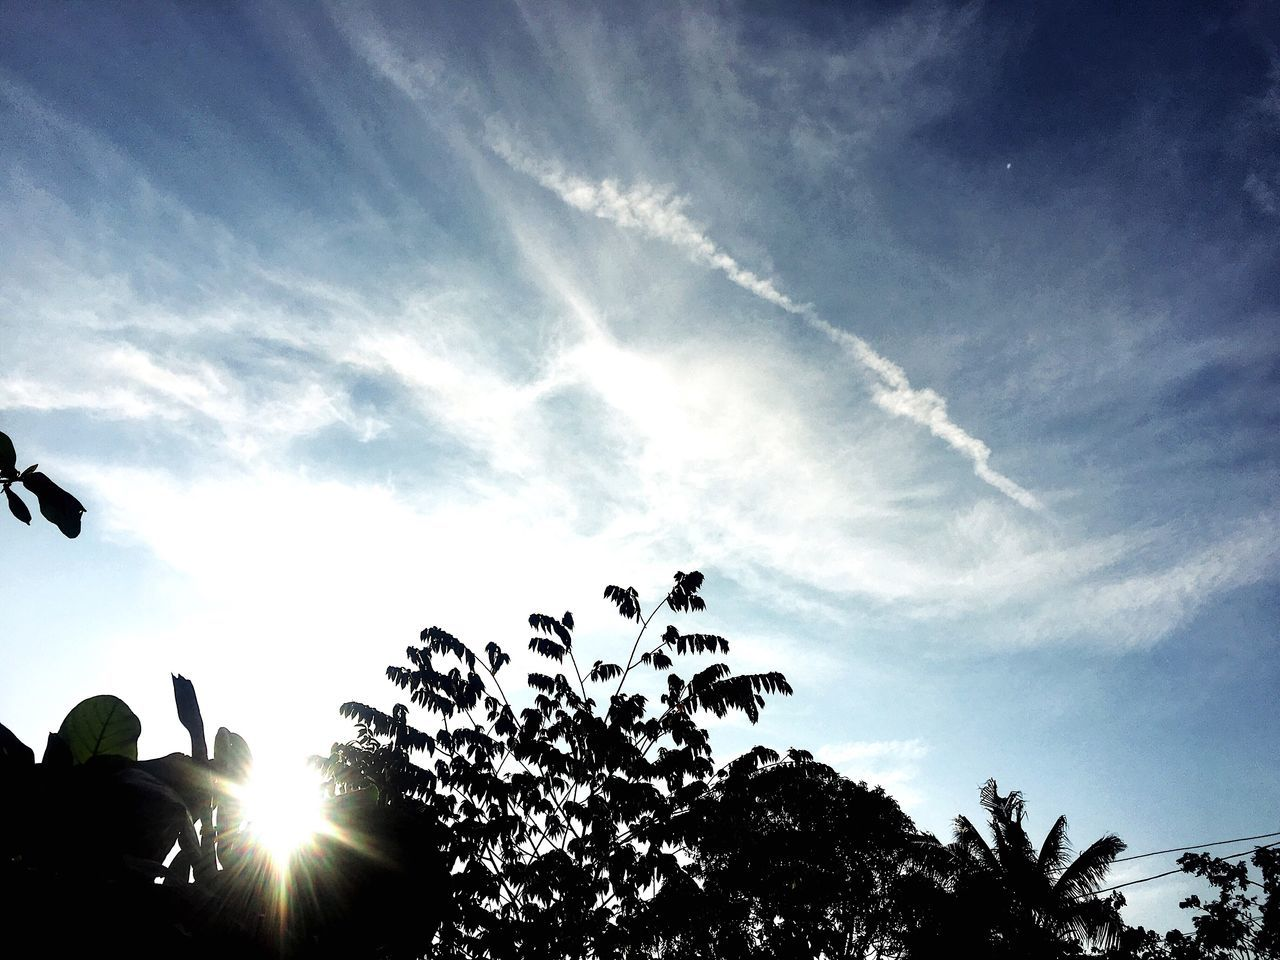 Sky Sunbeam Silhouette Sun Nature Sunlight Low Angle View Beauty In Nature Tree No People Outdoors Scenics Day Eyeem Philippines